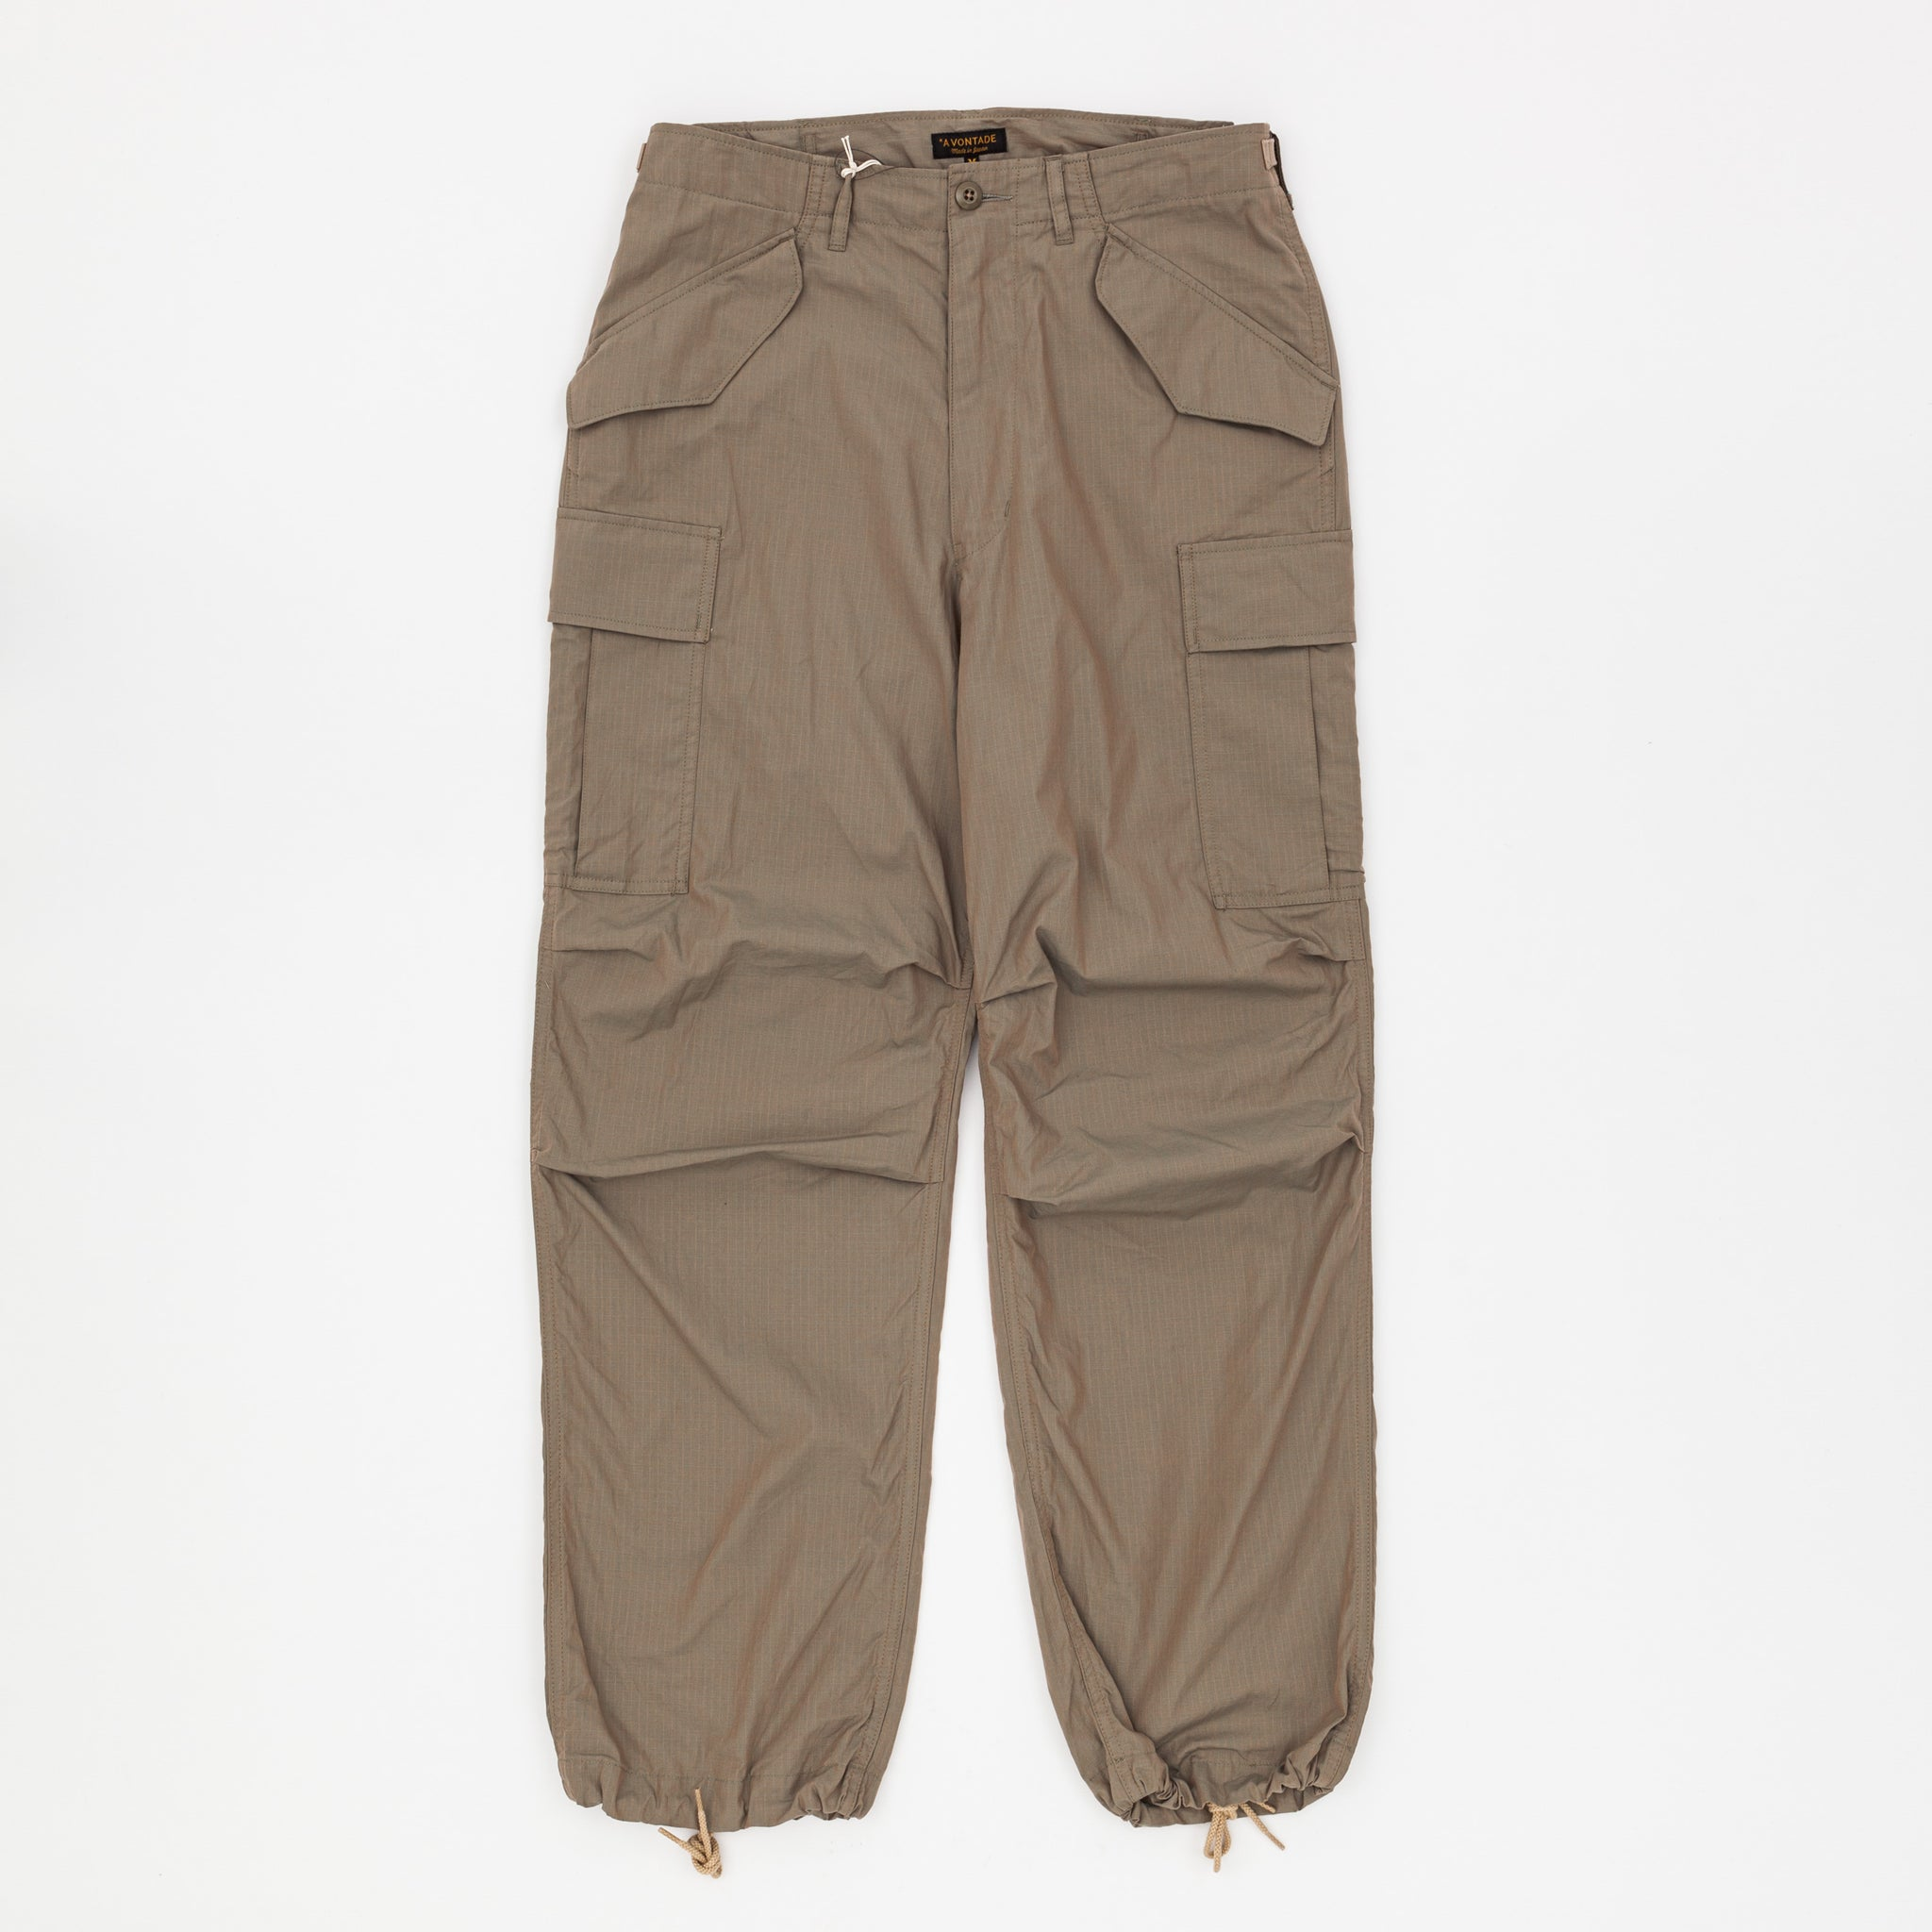 M-51 Trousers Modify